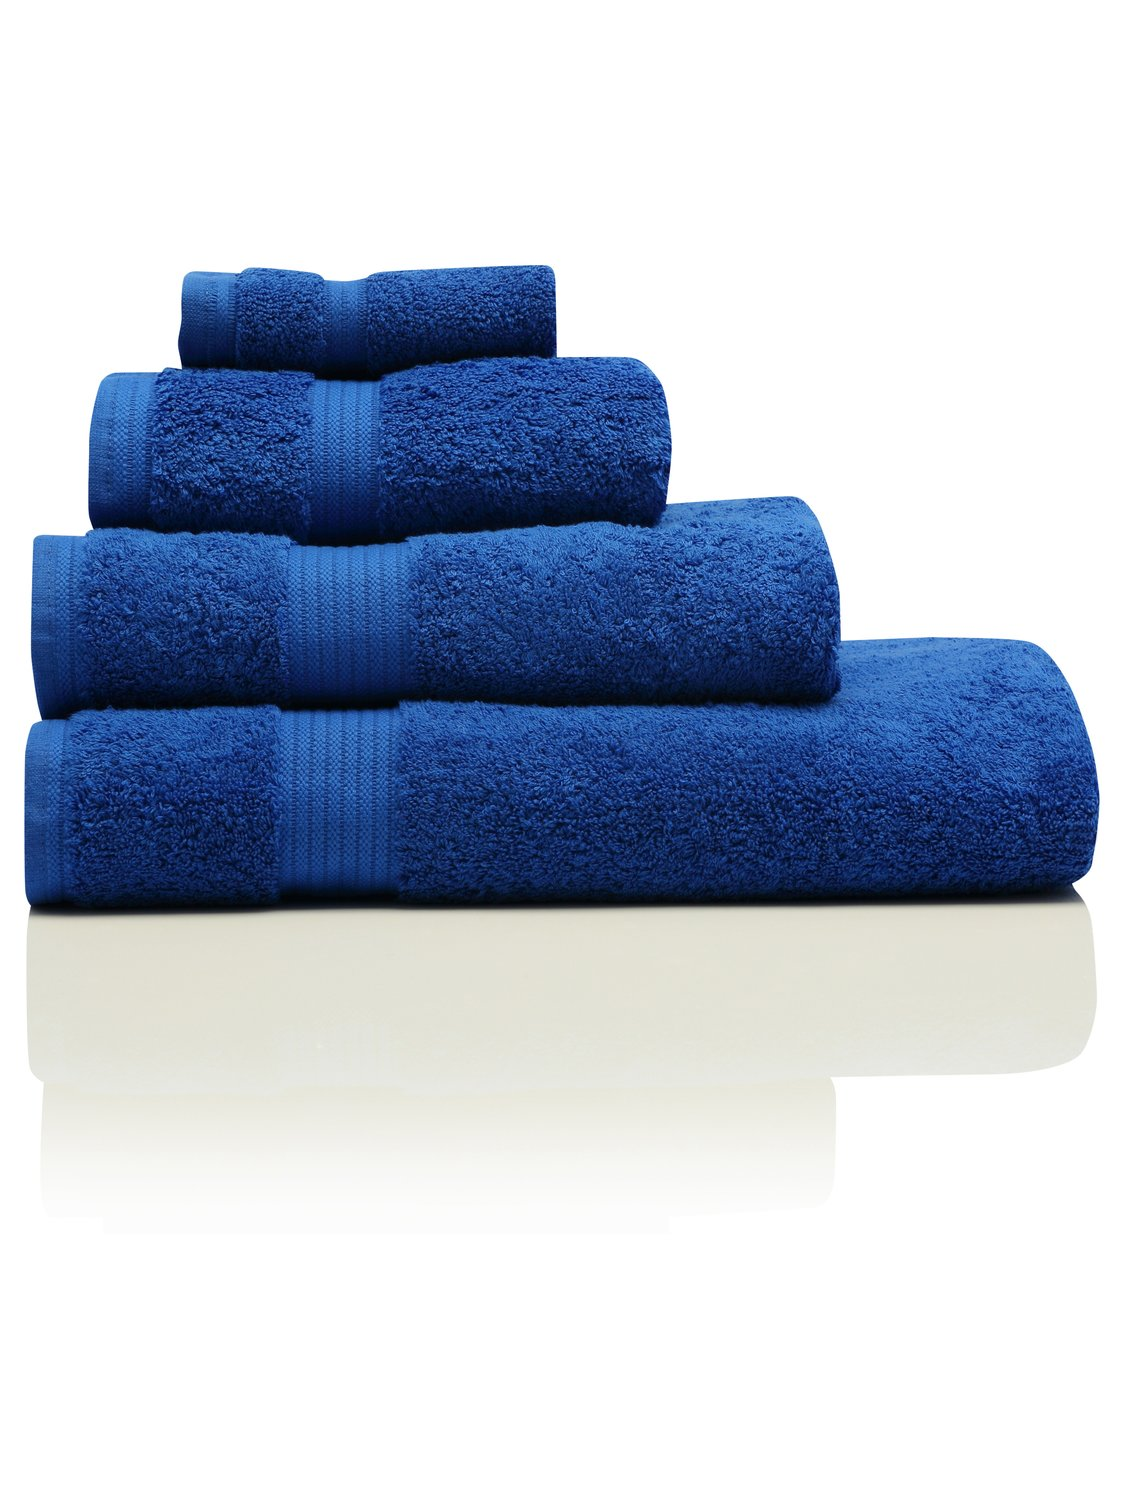 Image of 100% Combed Cotton 580Gsm Luxury Soft And Absorbent Bath Sheet - Cobalt